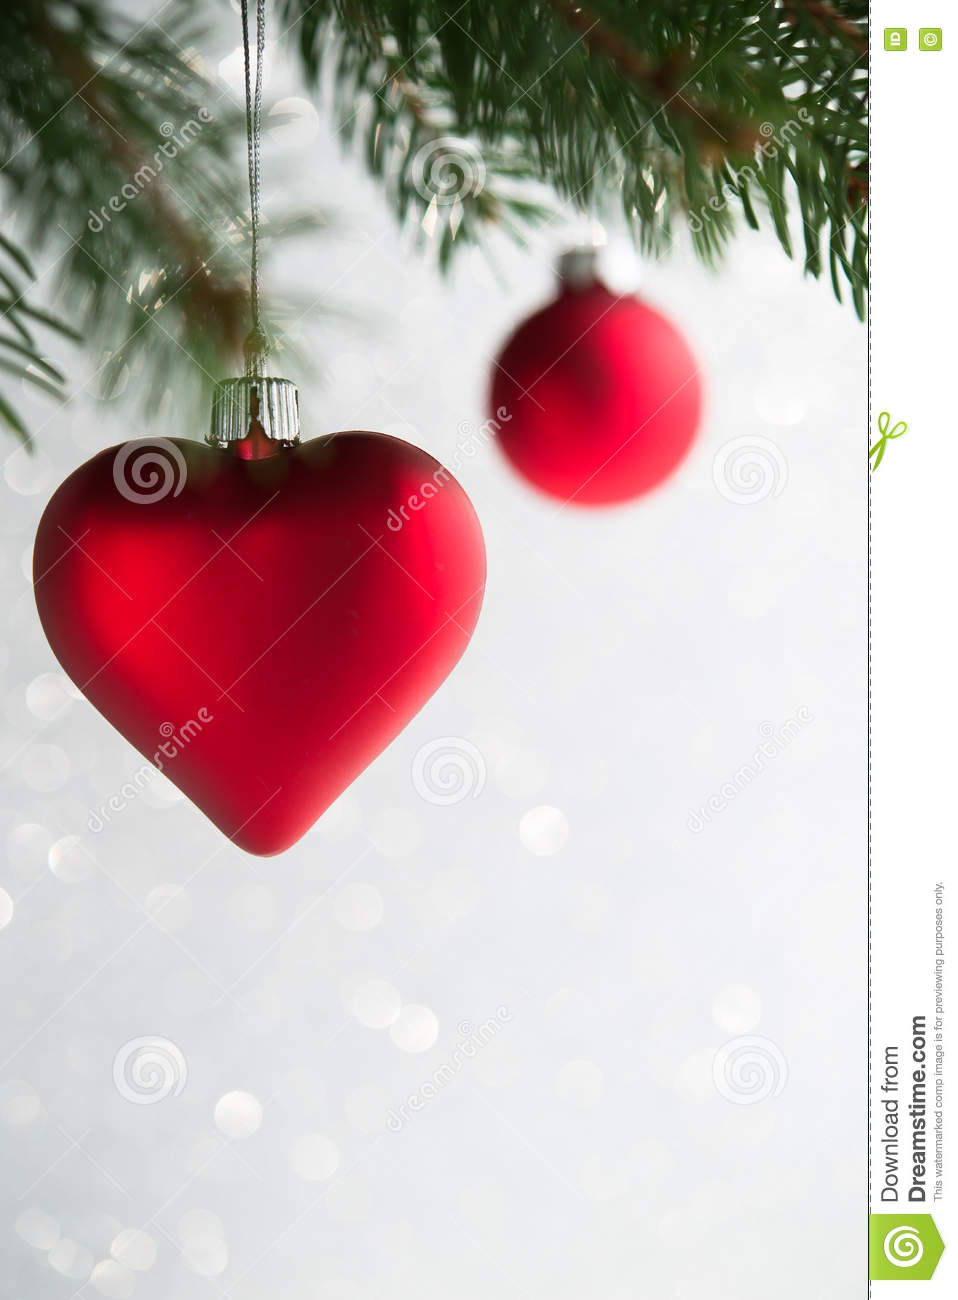 Red christmas ornaments heart and ball on the xmas tree on glitter bokeh background.